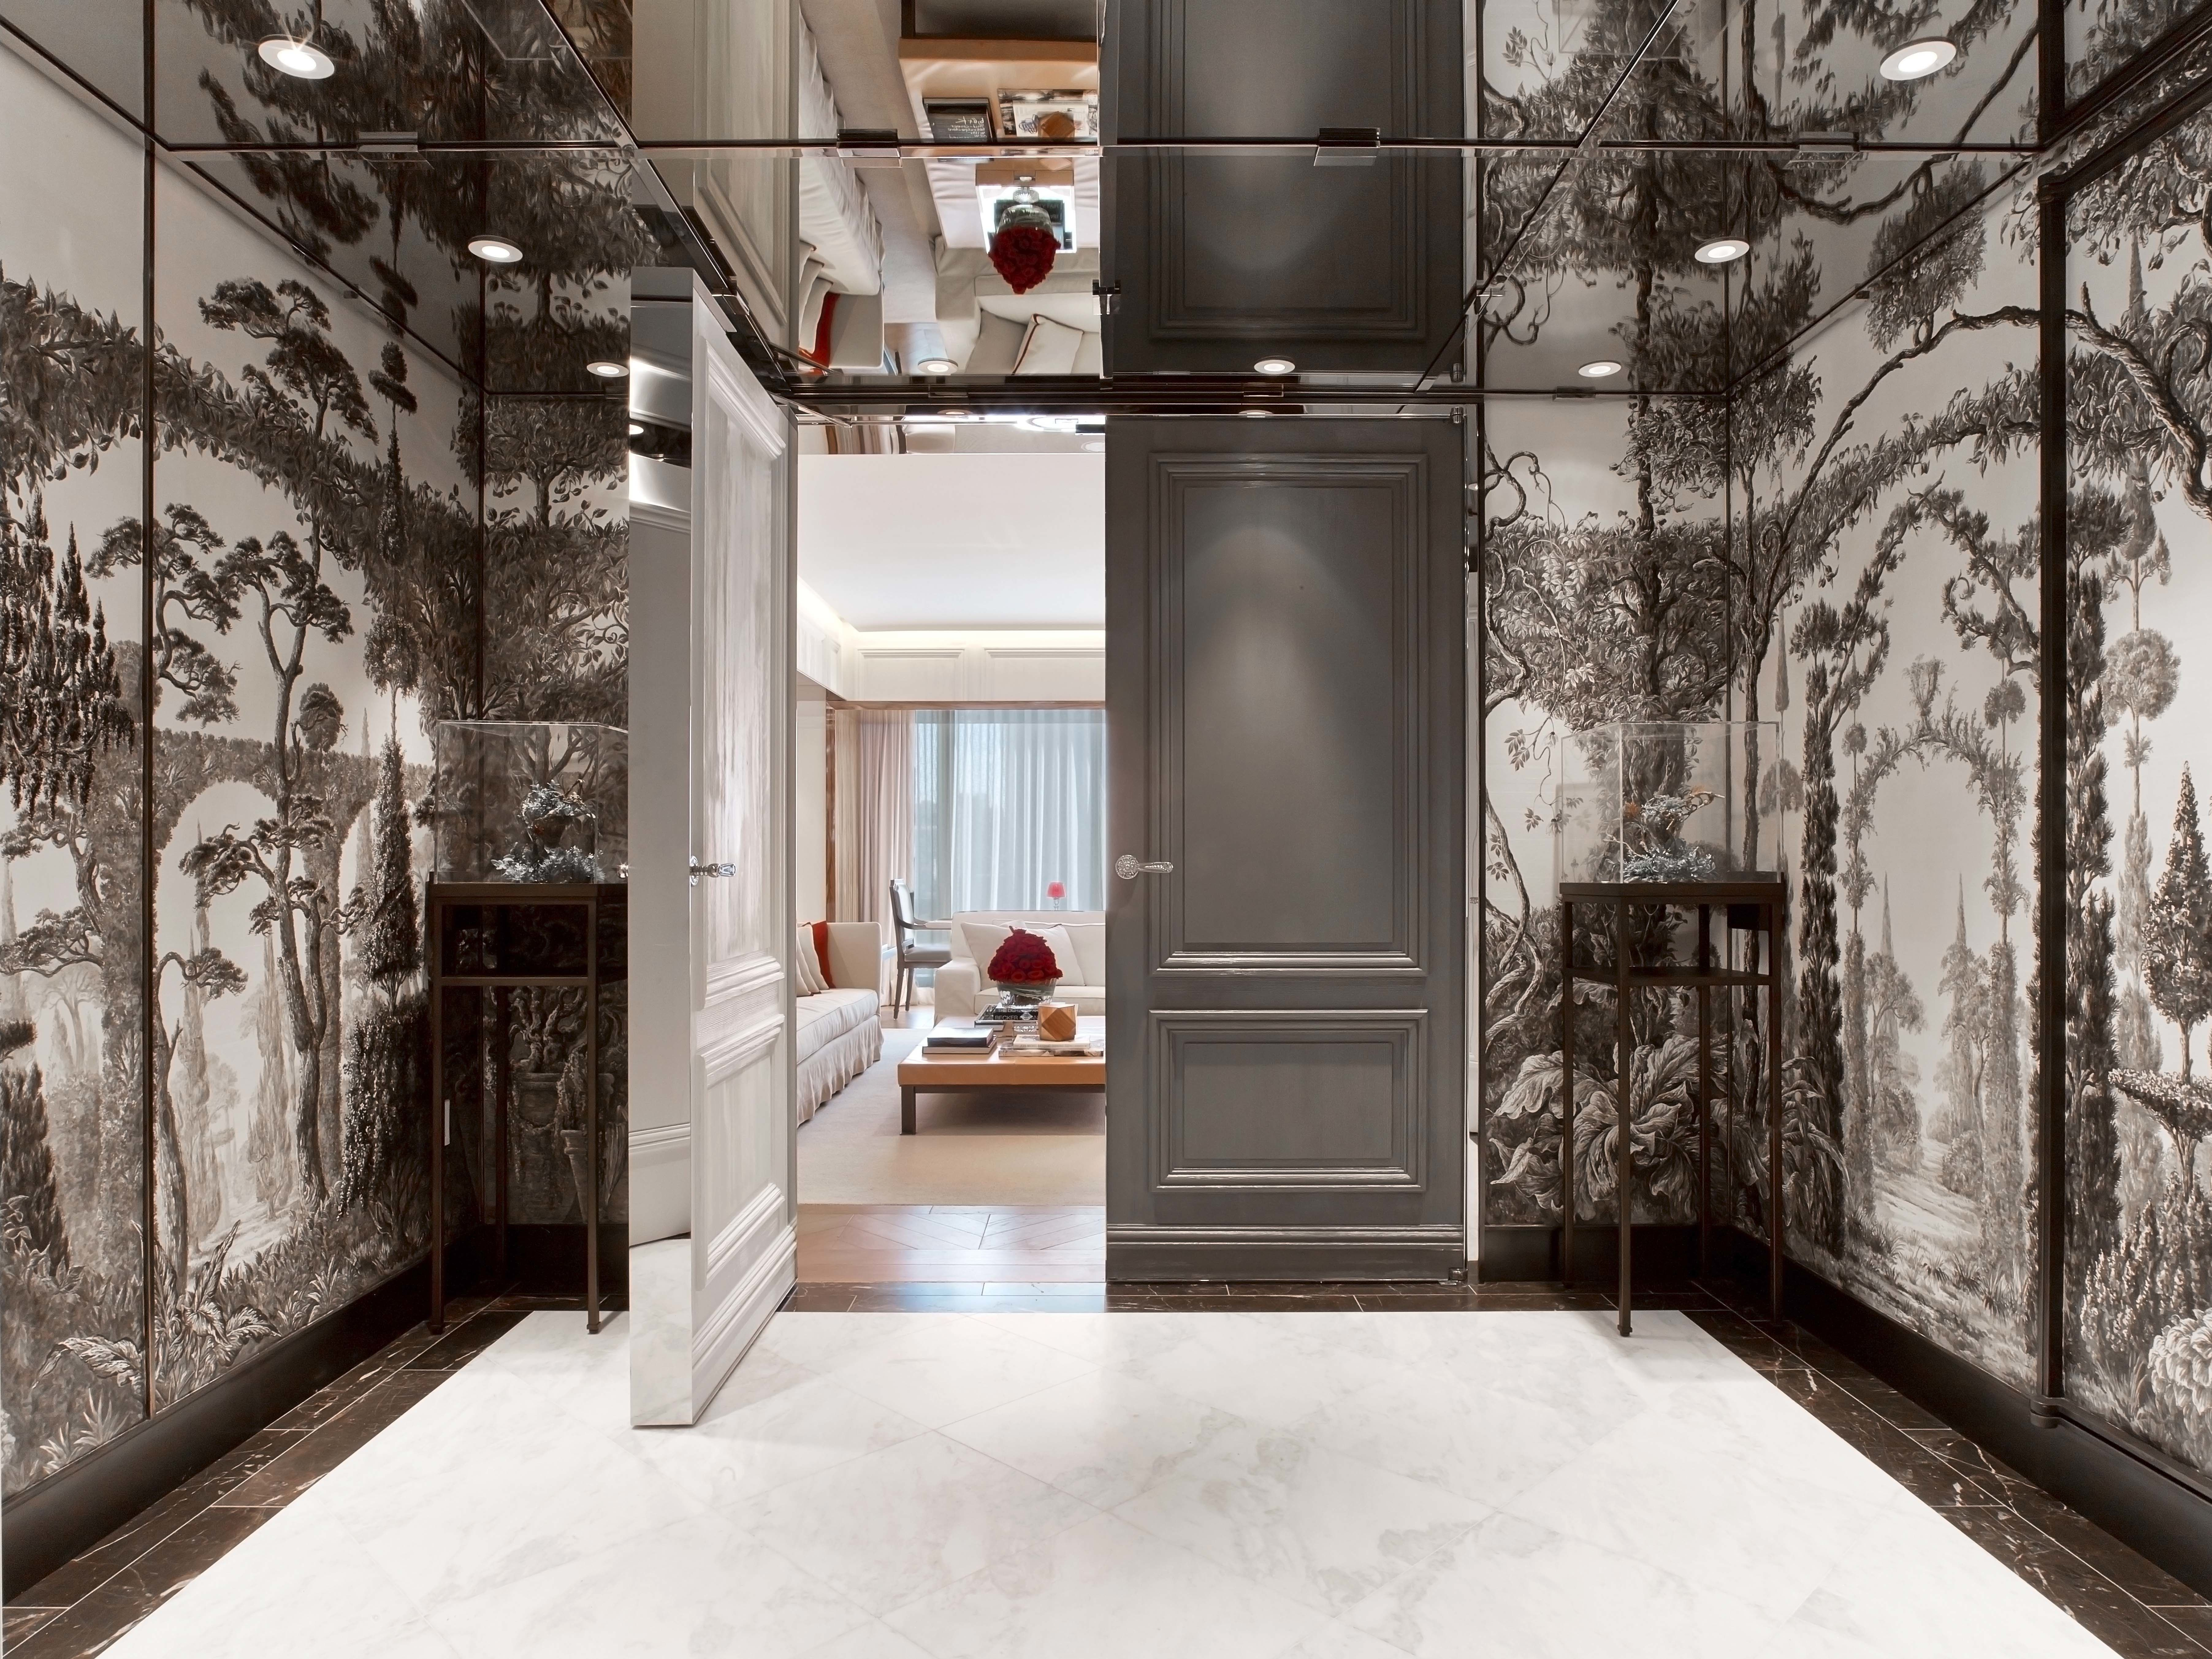 15 of the most expensive hotel suites in new york city for Most expensive hotels new york